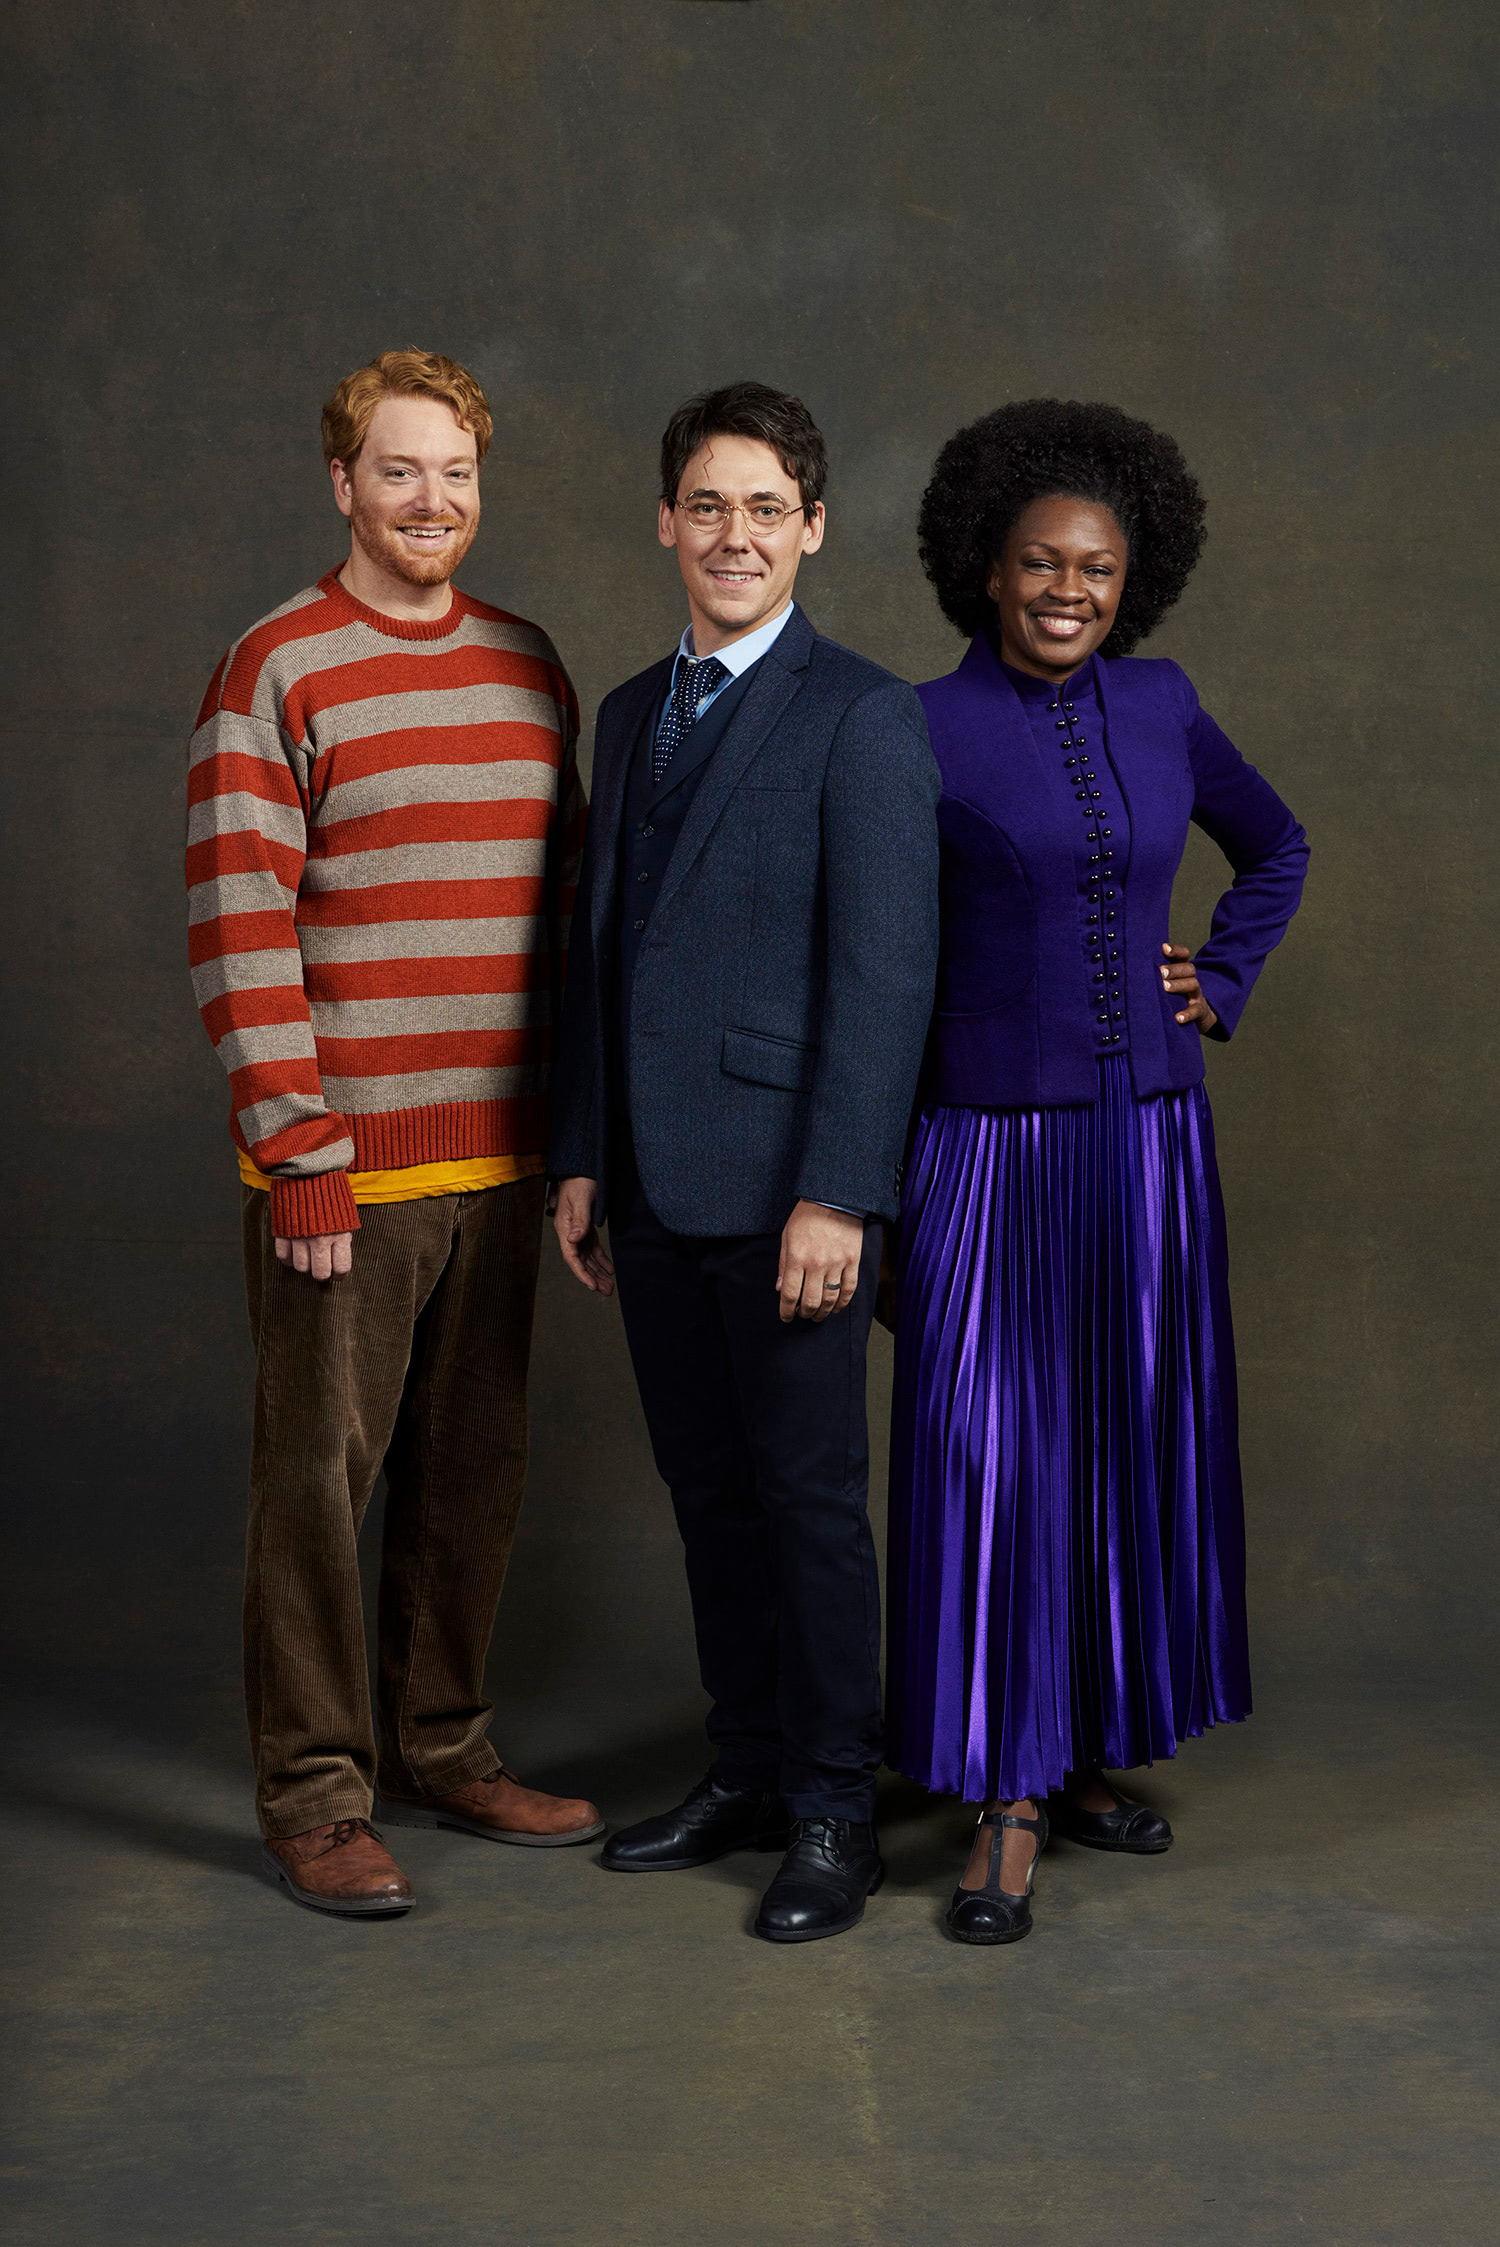 Ron, Harry and Hermione ('Cursed Child' San Francisco)